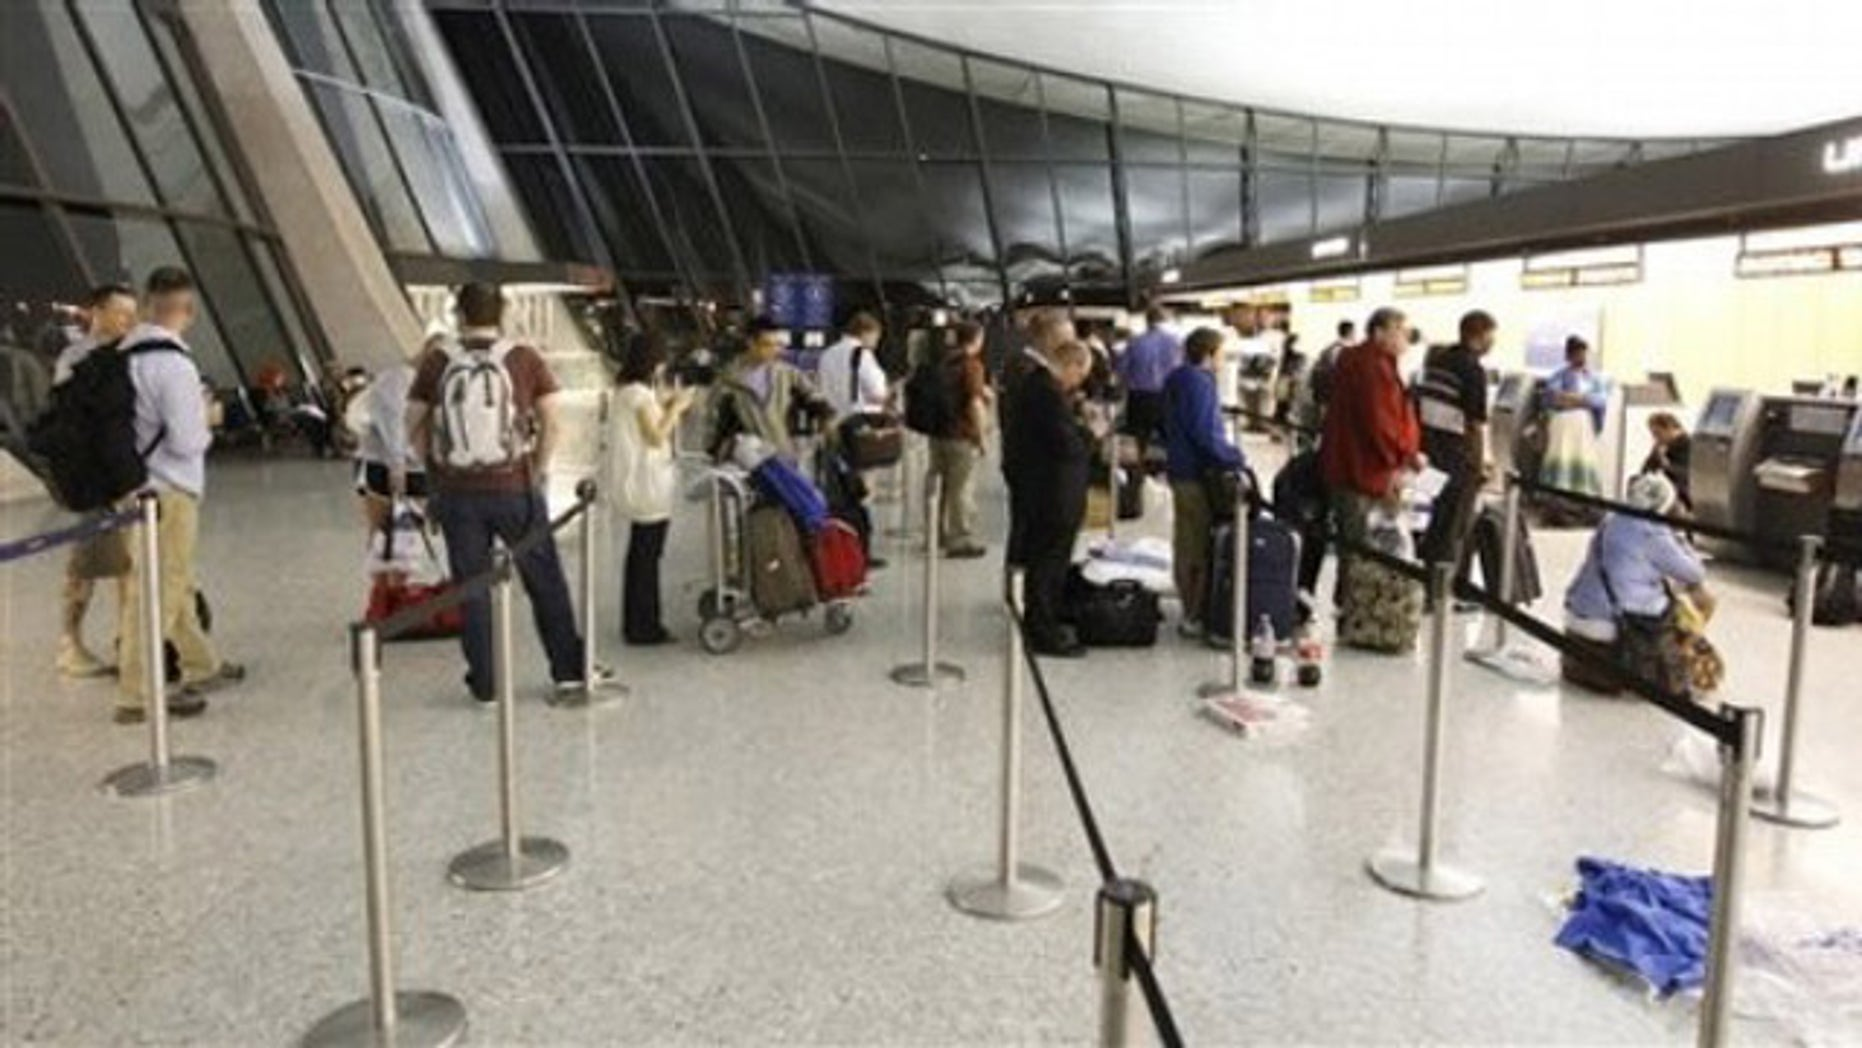 Airline passengers wait at the ticket counter of Washington Dulles International Airport in Chantilly, Va., June 18.